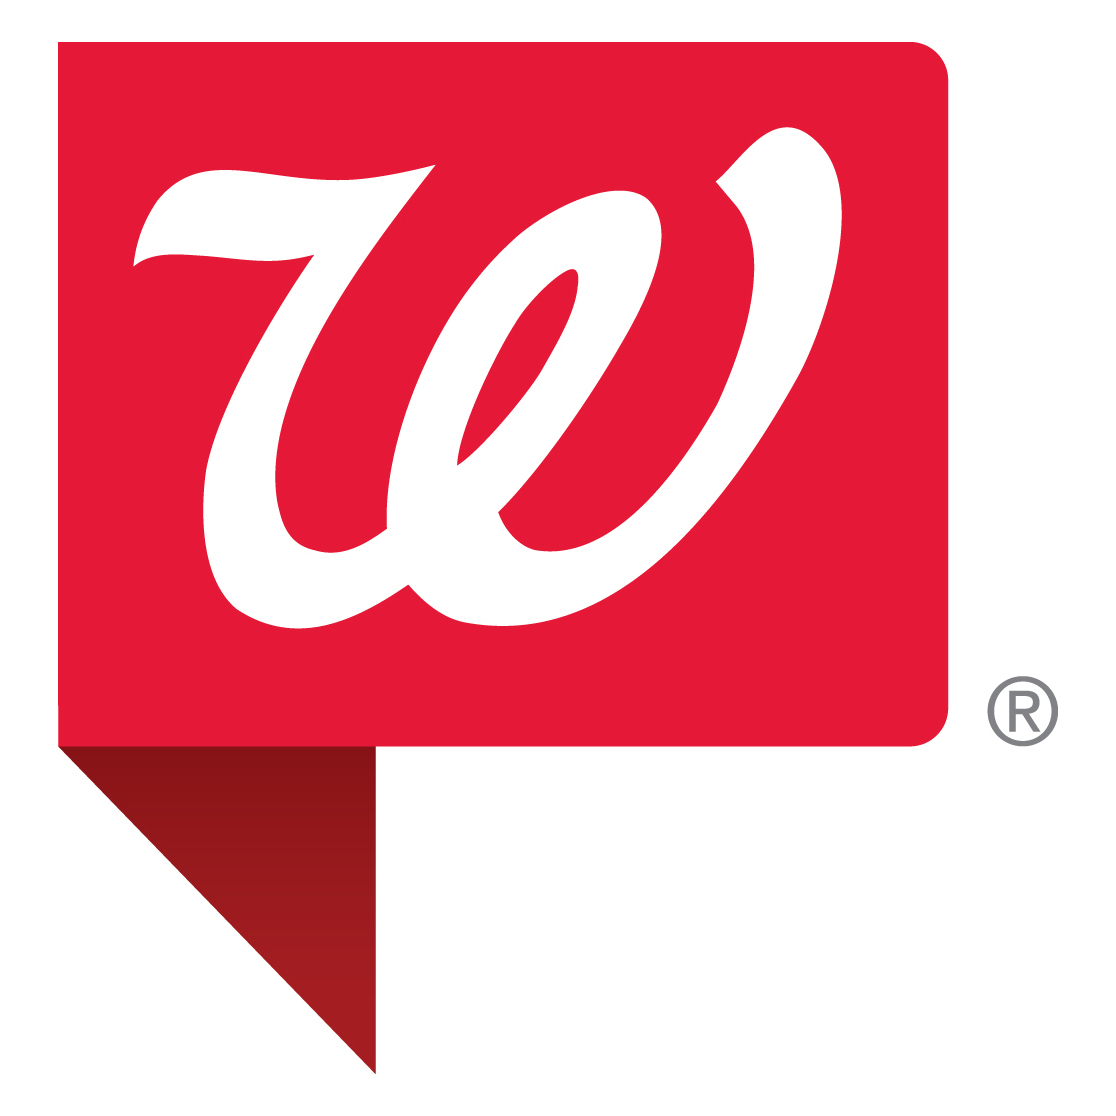 Walgreens - Chillicothe, OH - Pharmacist